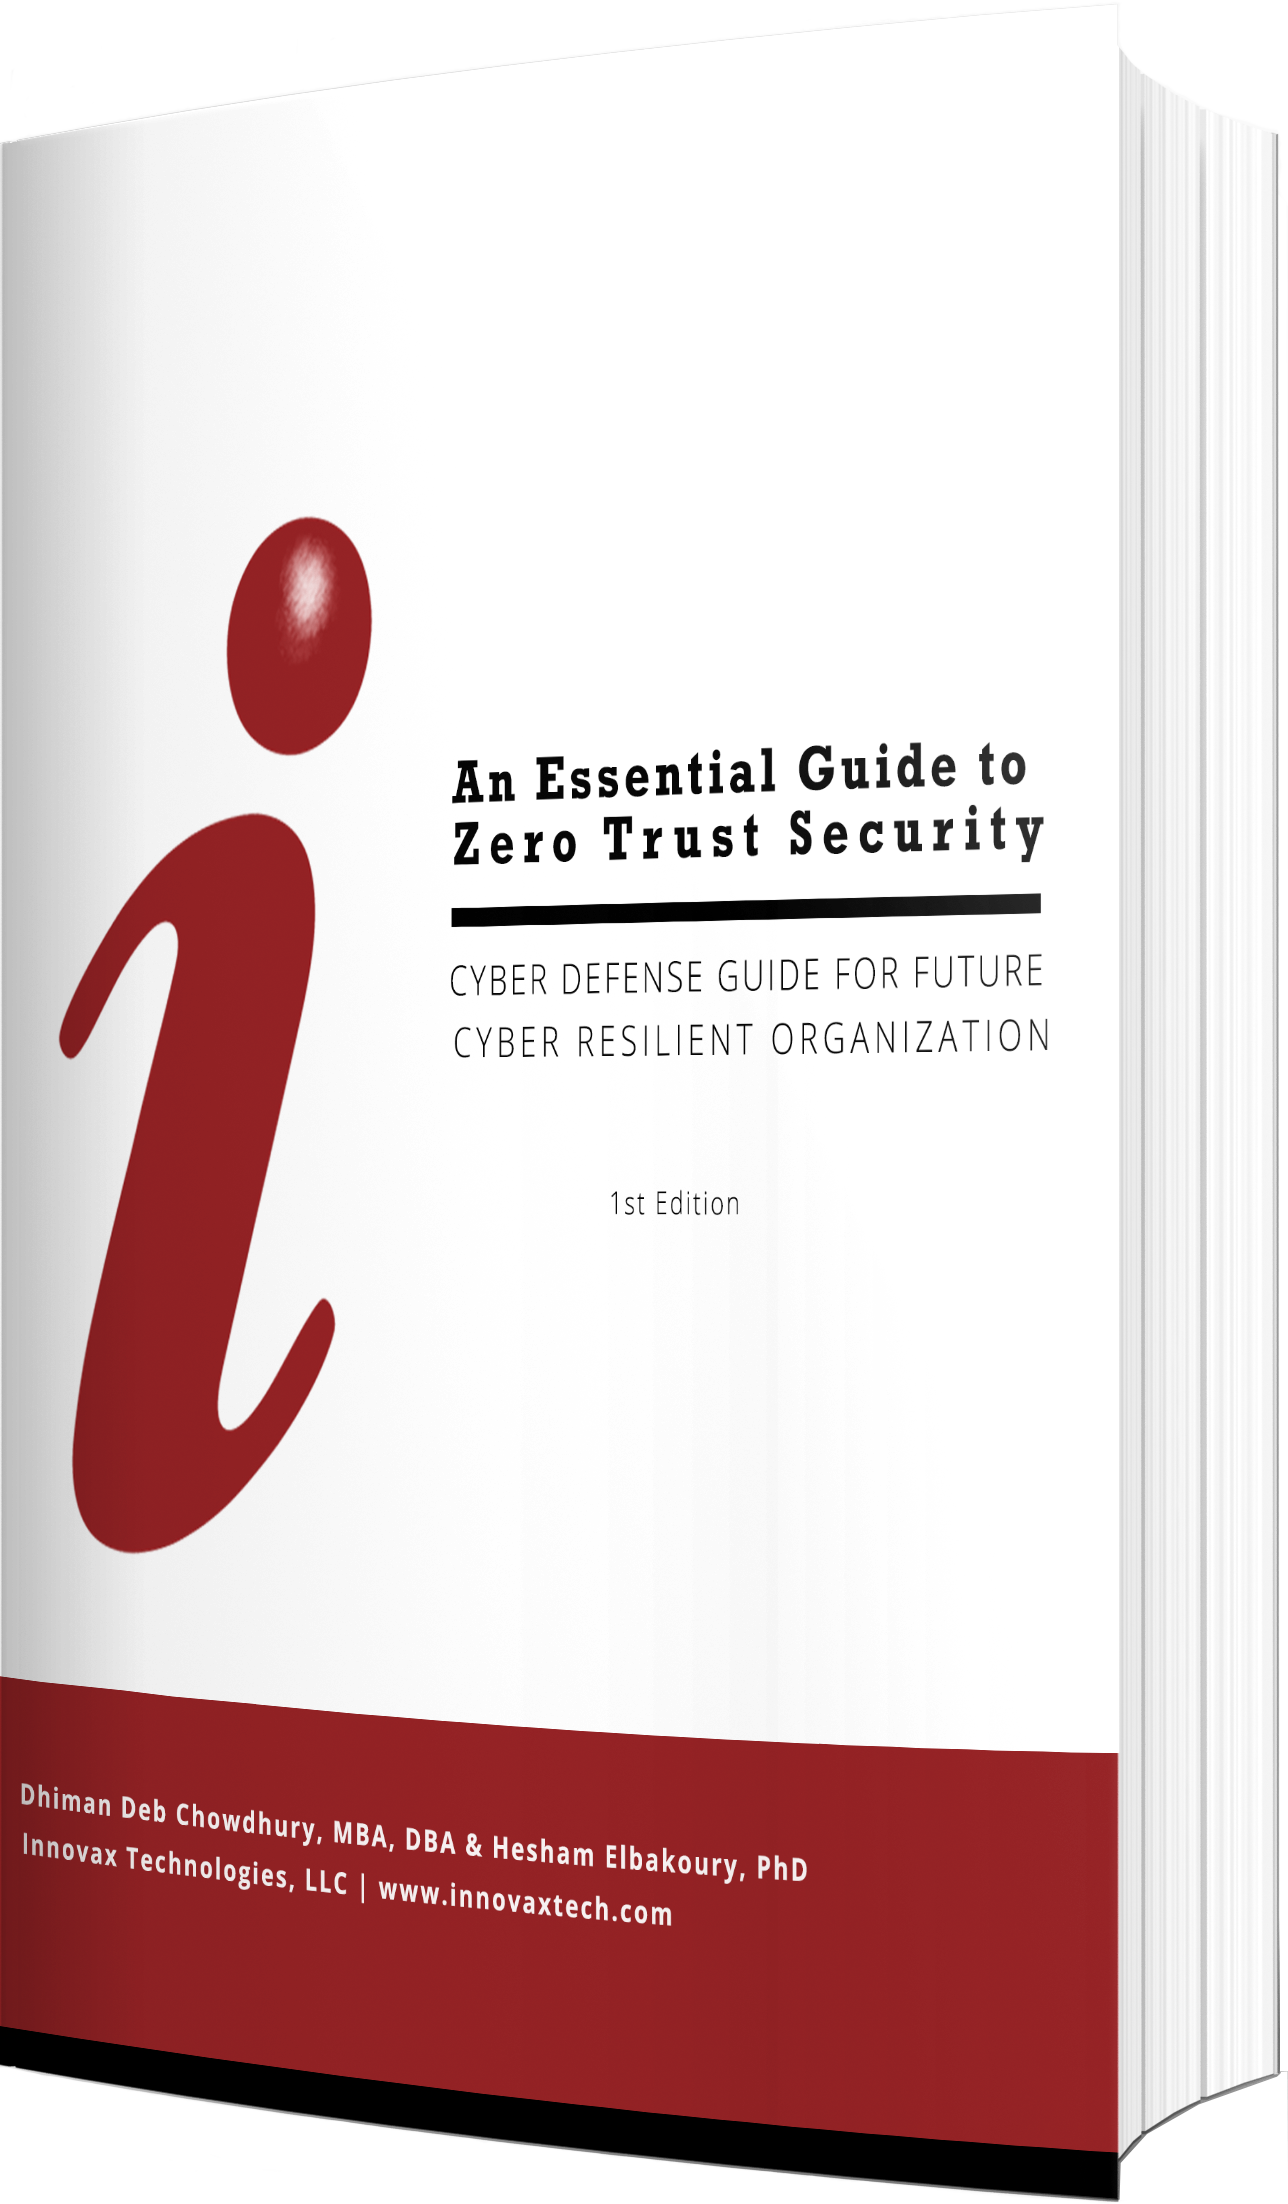 An Essential Guide to Zero Trust Security